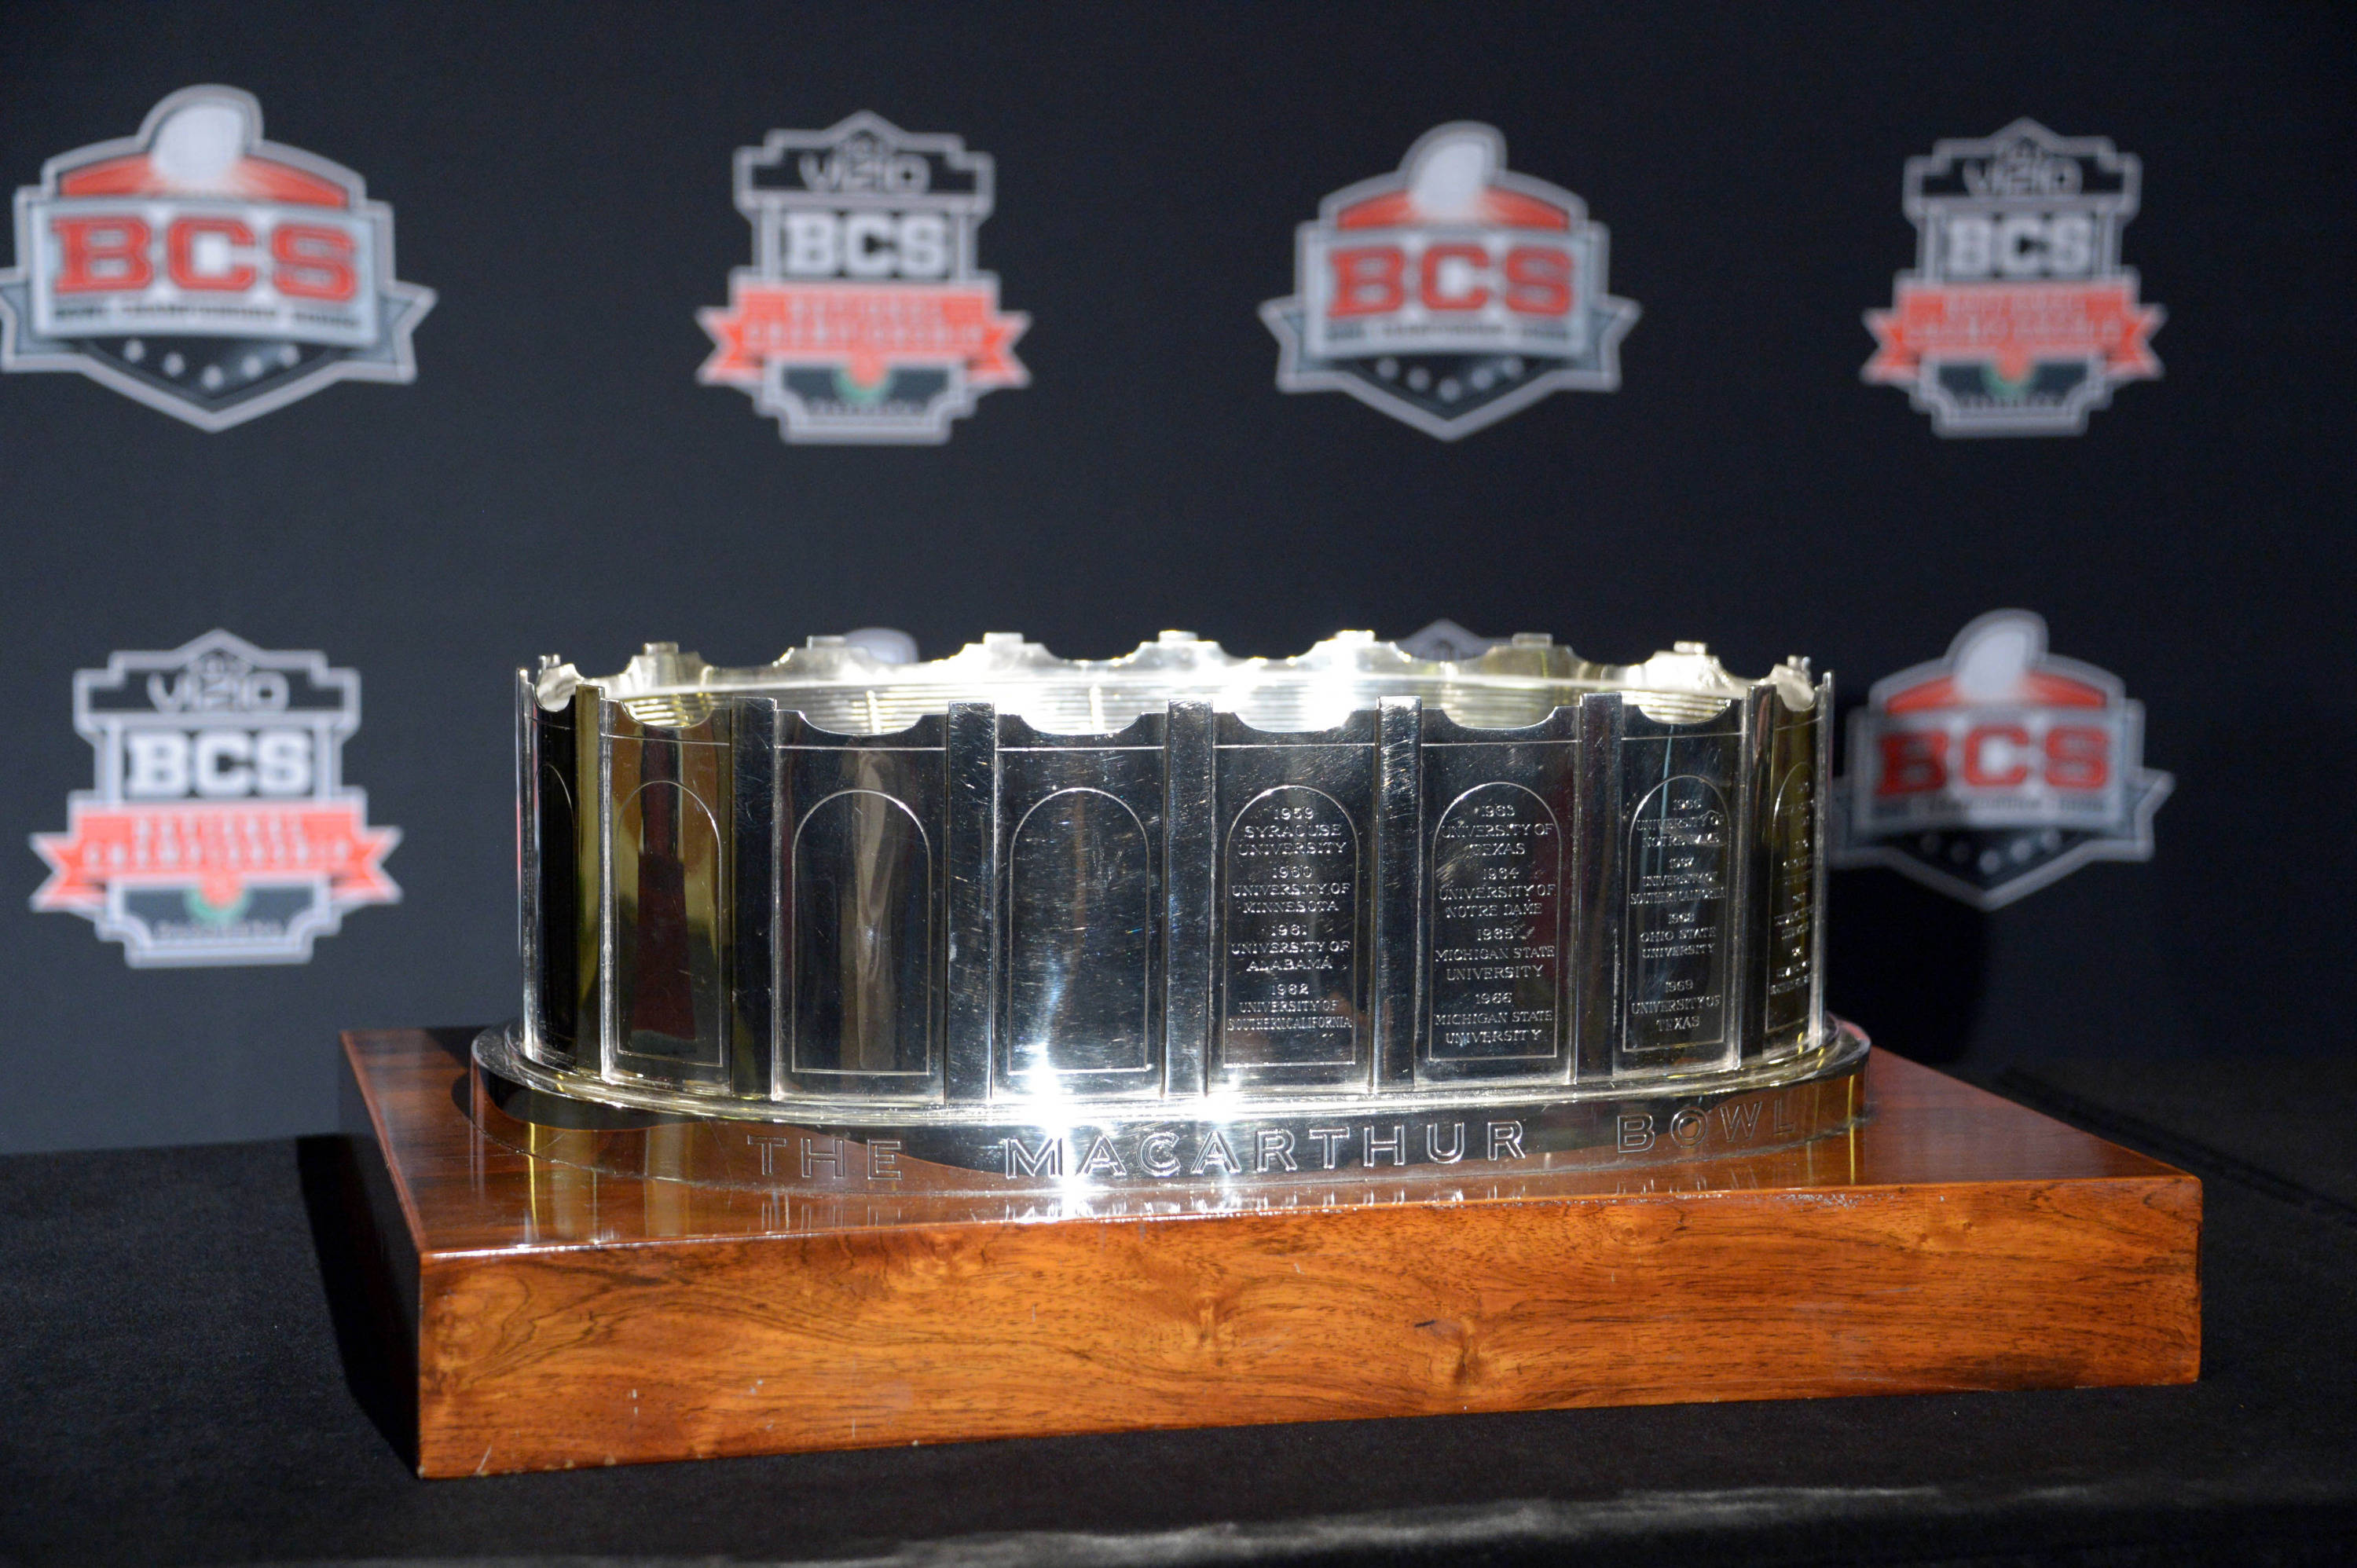 General view of the MacArthur Bowl trophy presented by National Football Foundation at 2014 BCS National Championship press conference at Newport Beach Marriott. Mandatory Credit: Kirby Lee-USA TODAY Sports